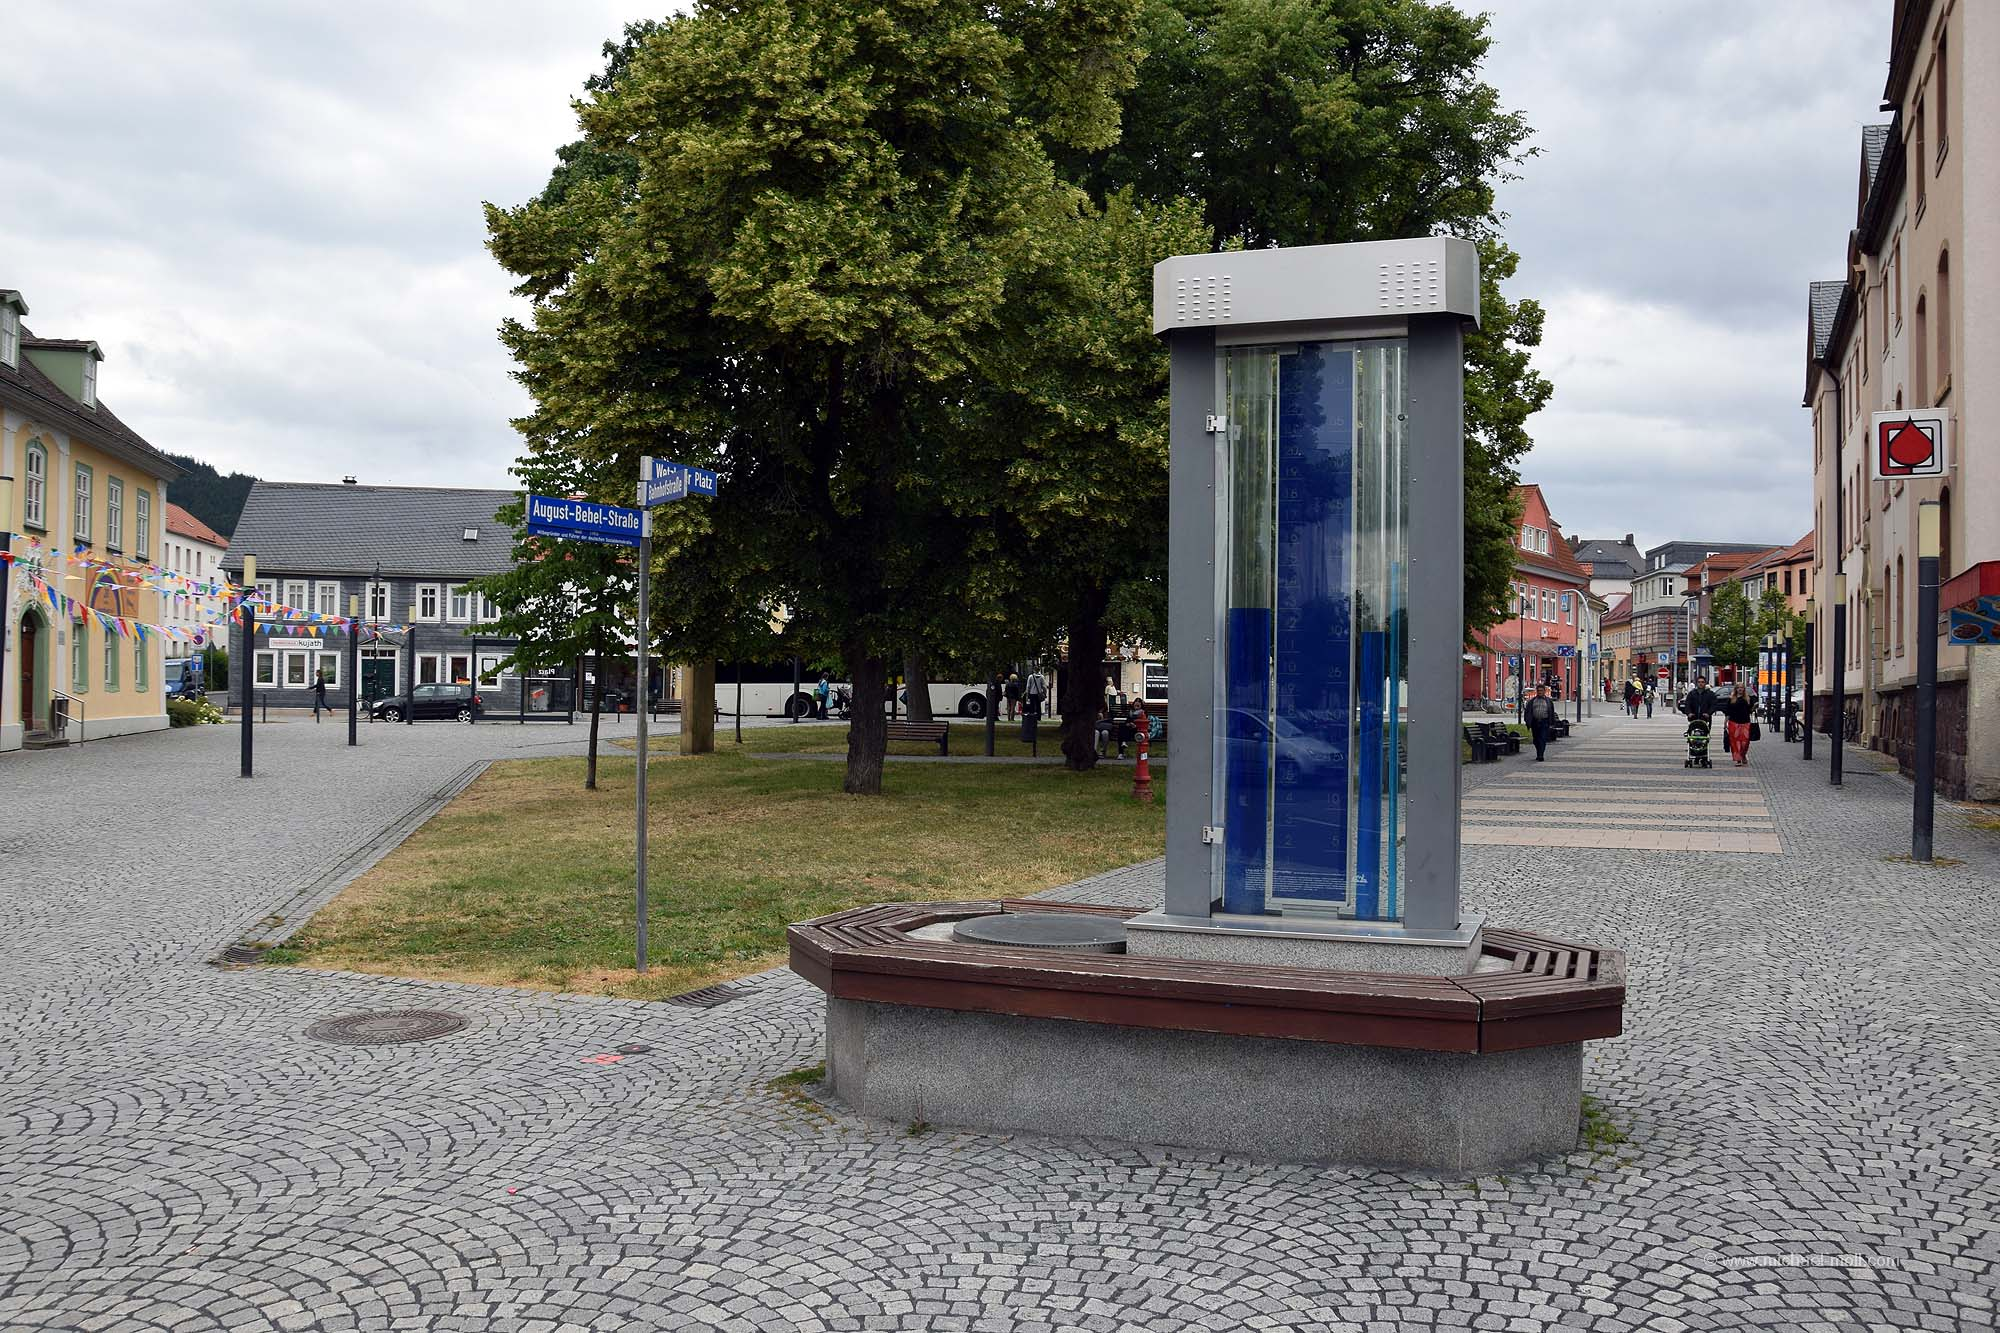 Liquid-Chronometer in Ilmenau